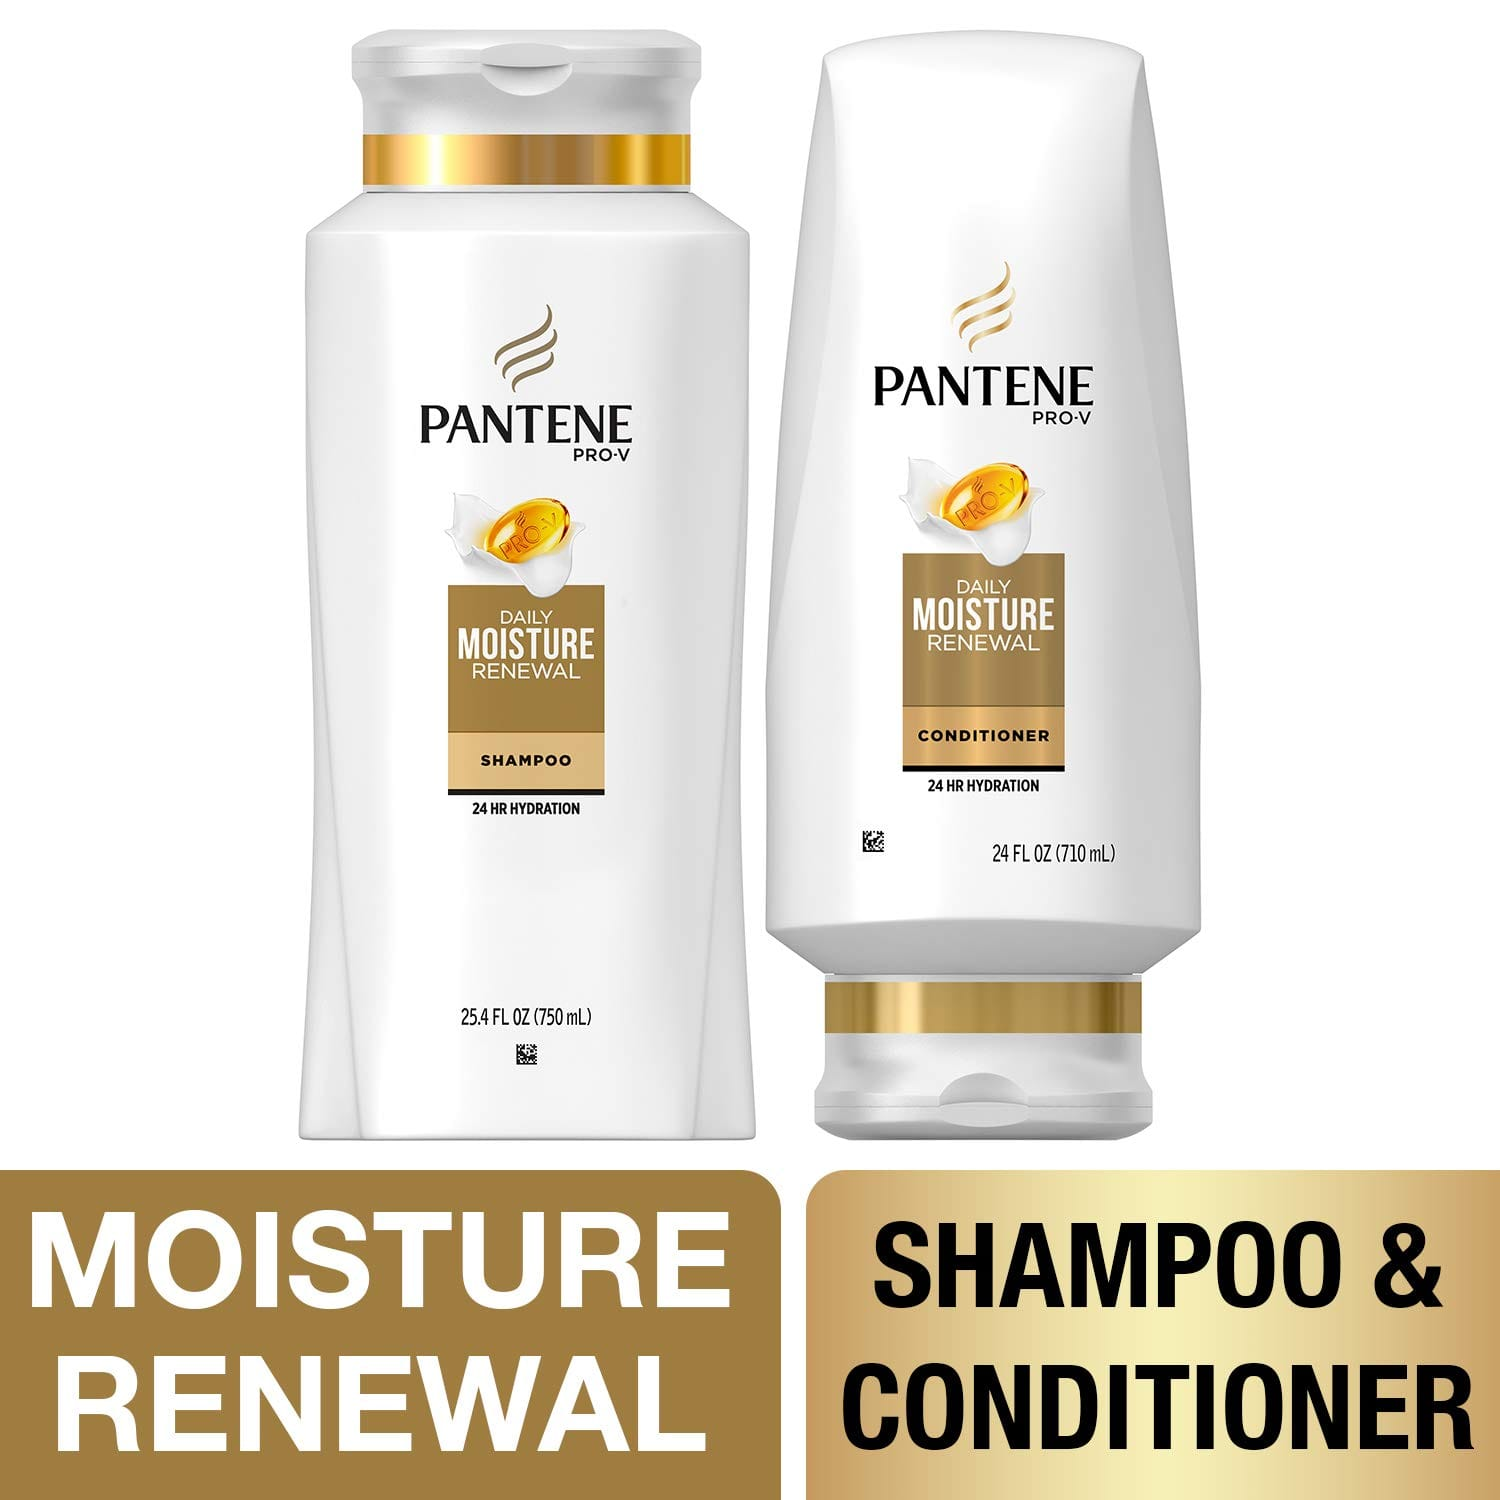 Pantene, Shampoo and Sulfate Free Conditioner Kit, Pro-V Daily Moisture Renewal for Dry Hair, 25.4 oz and 24 oz, Kit $9.09